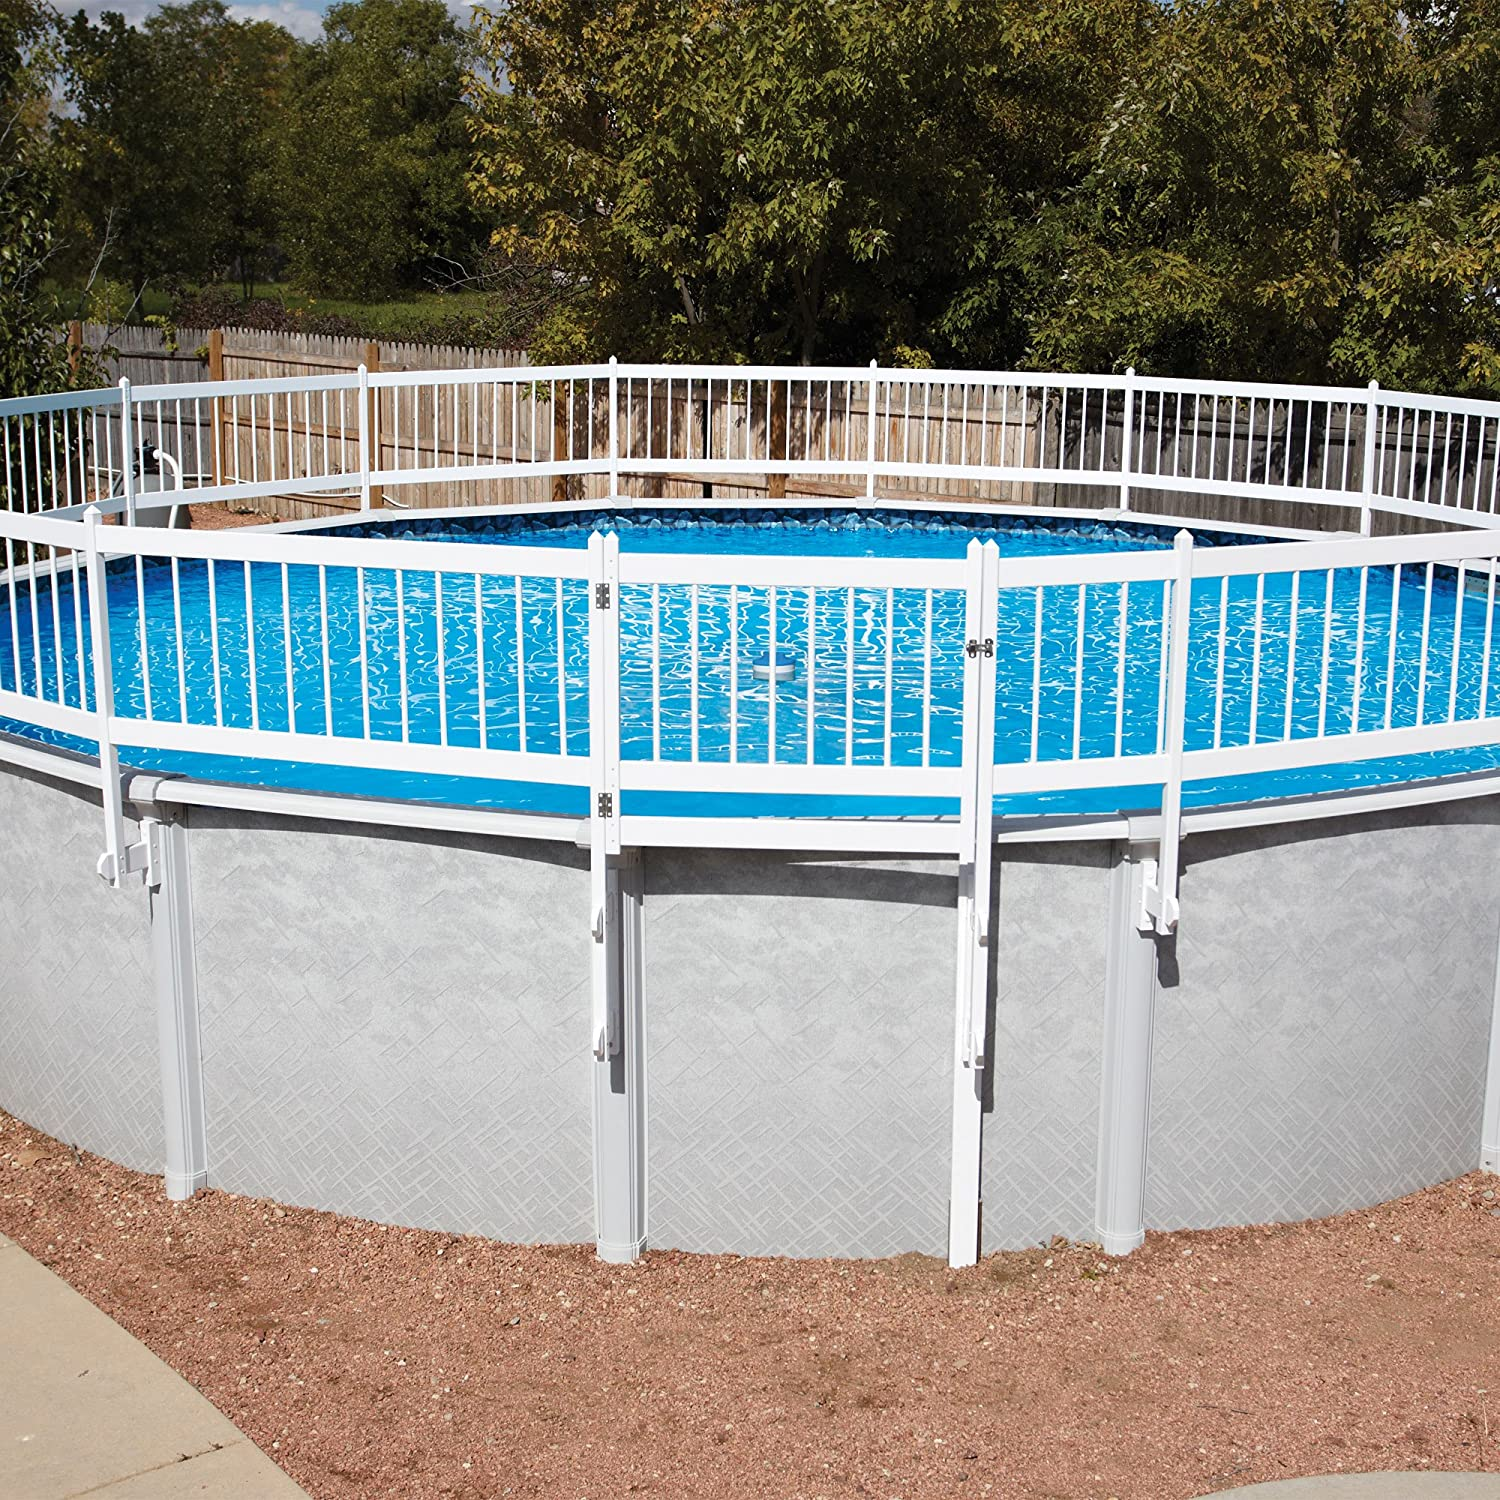 Best Pool Fence Reviews To Protect Your Family 2018 Ultimate Pool Guide